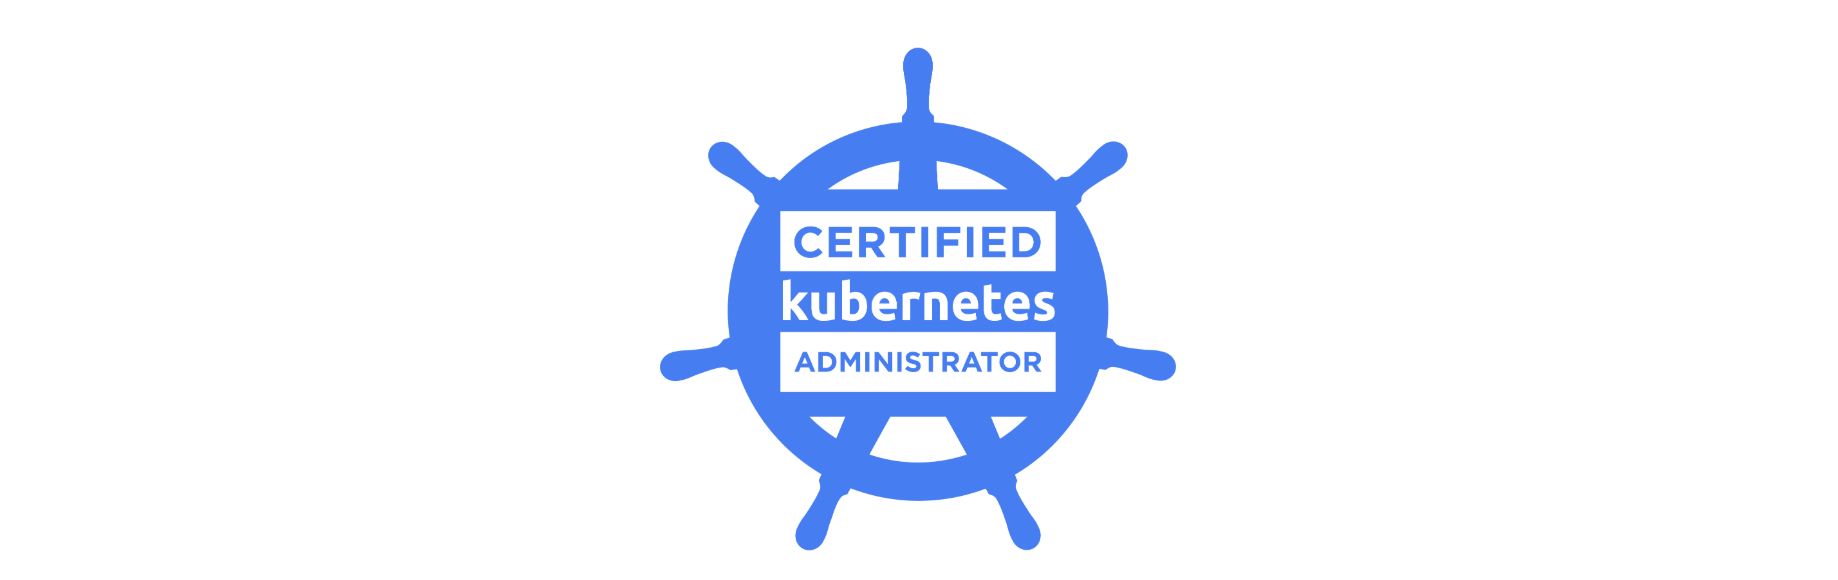 How I passed Certified Kubernetes Administrator exam on